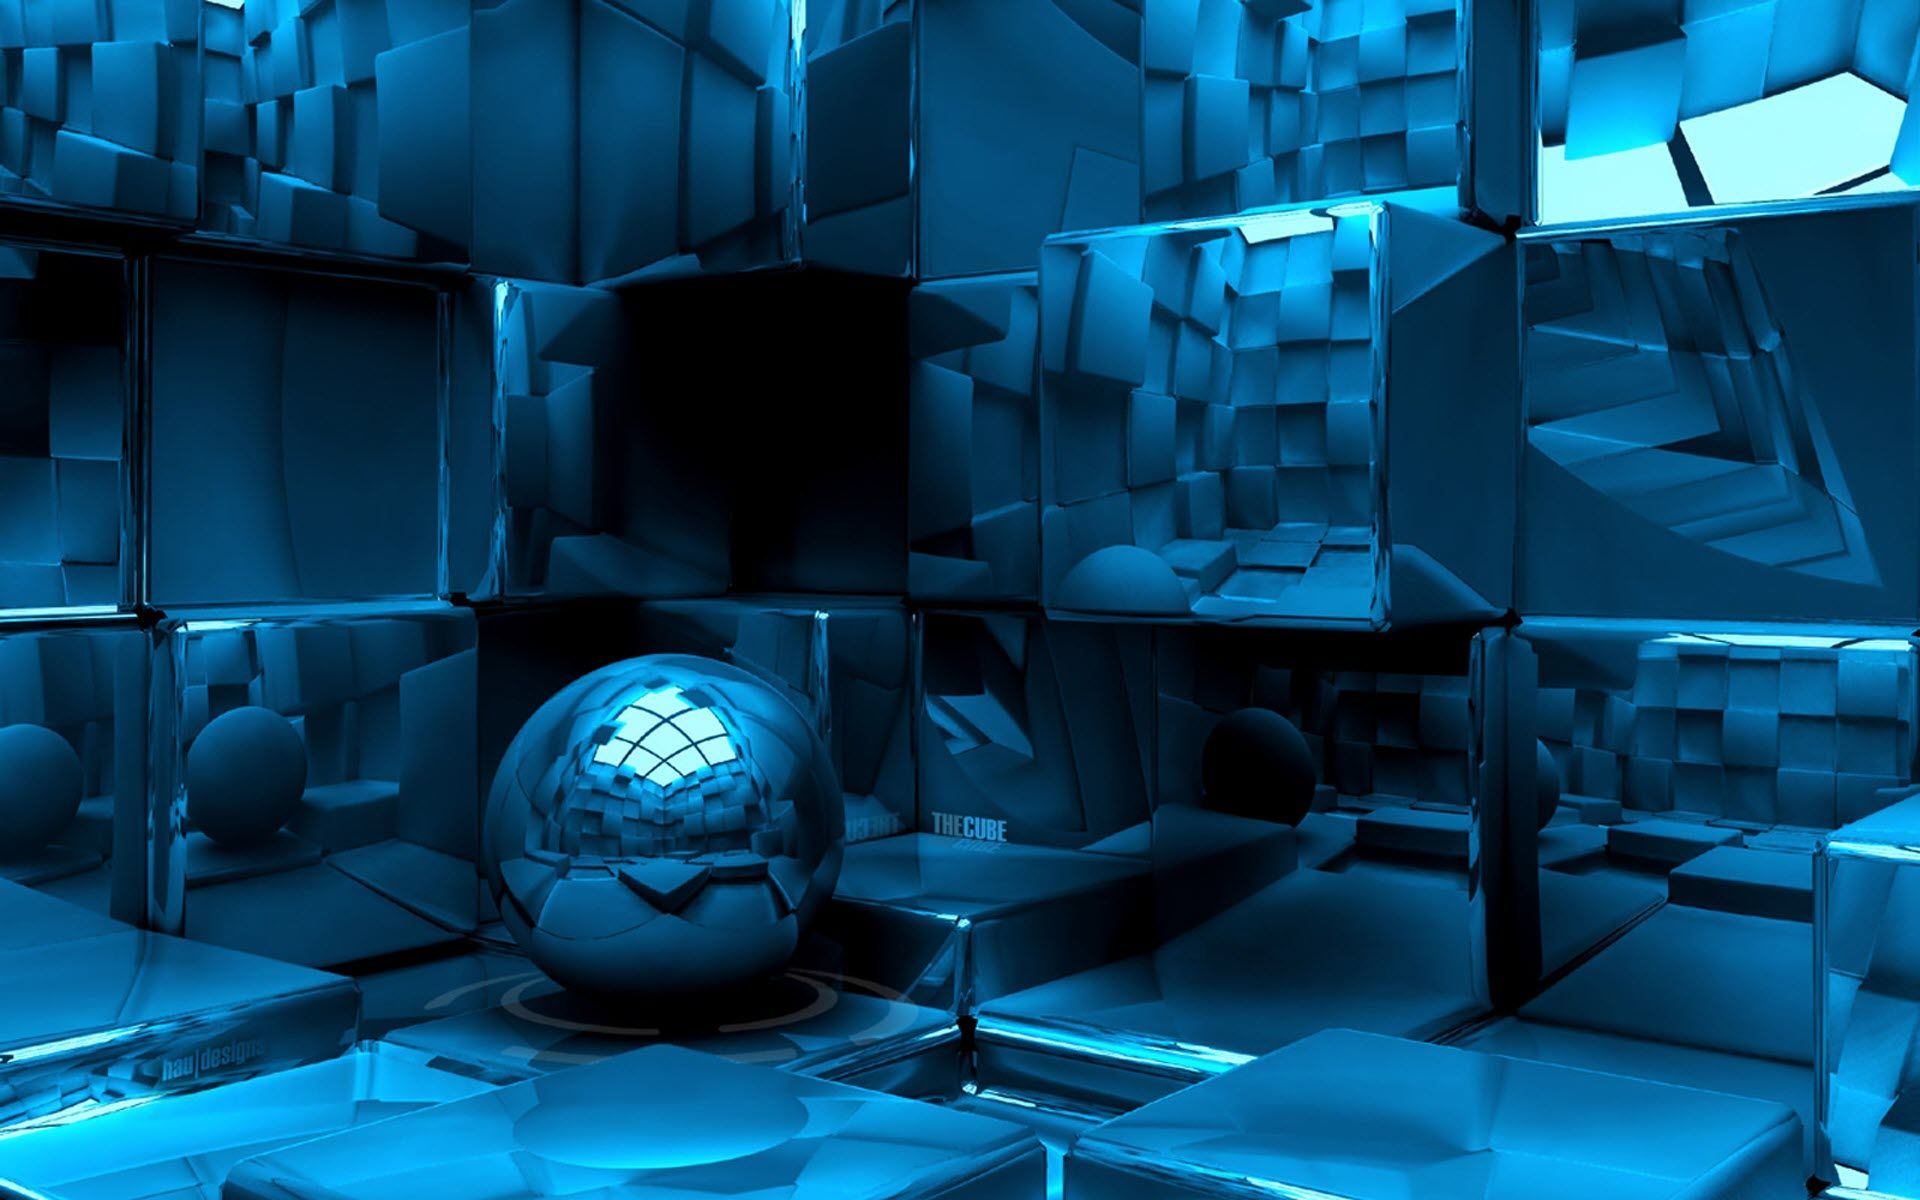 Papel de parede 3d o cubo wallpaper para download no celular ou computador pc - Papel pared 3d ...